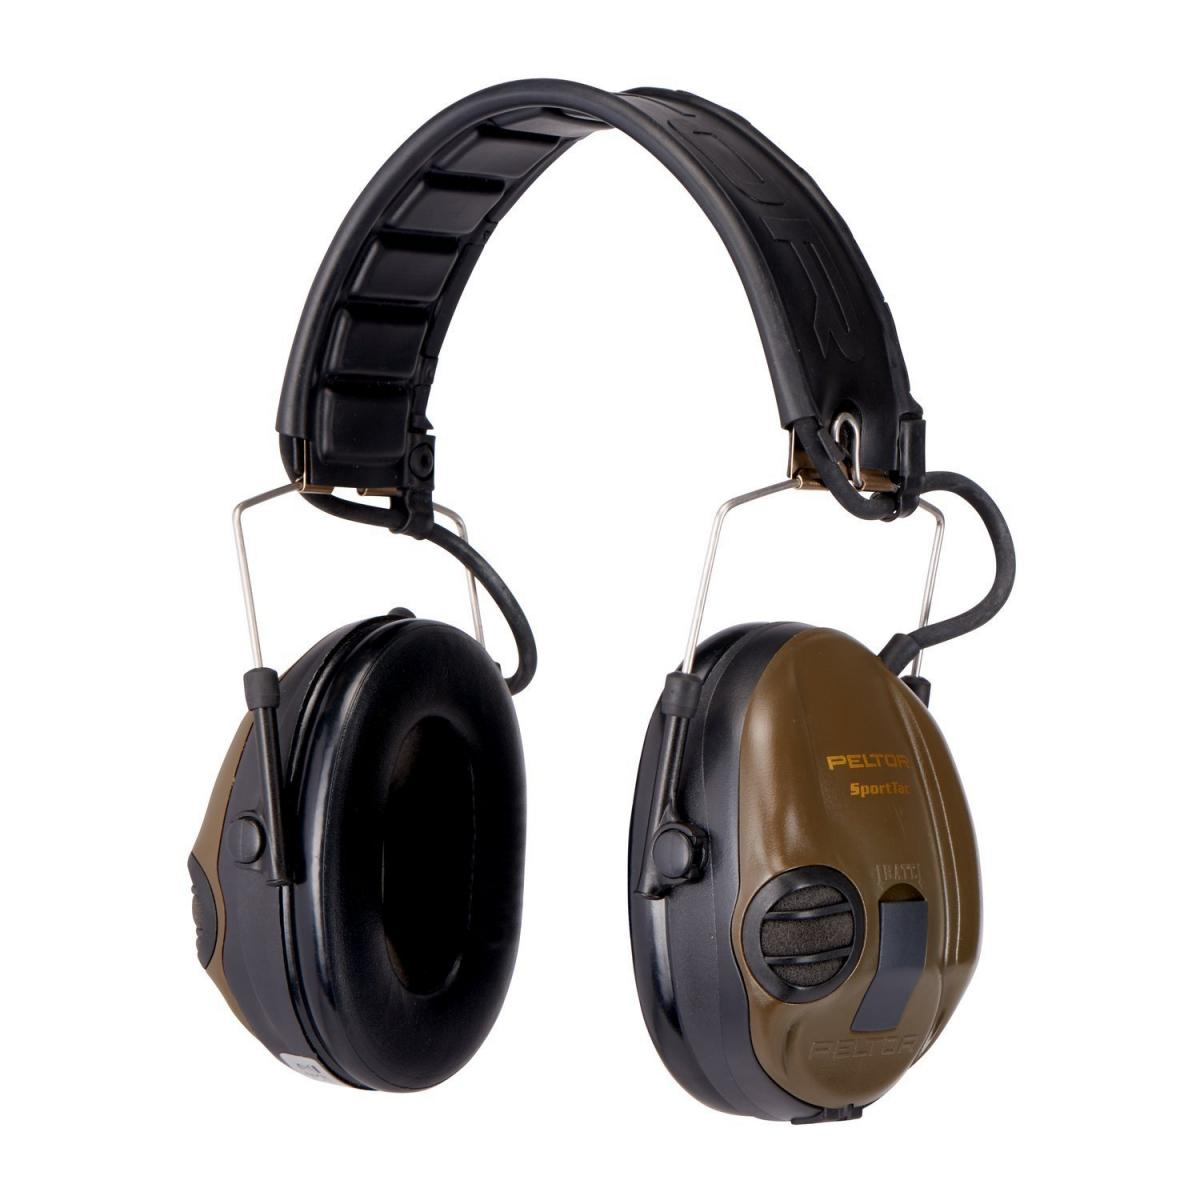 3m peltor hearing protection headphones